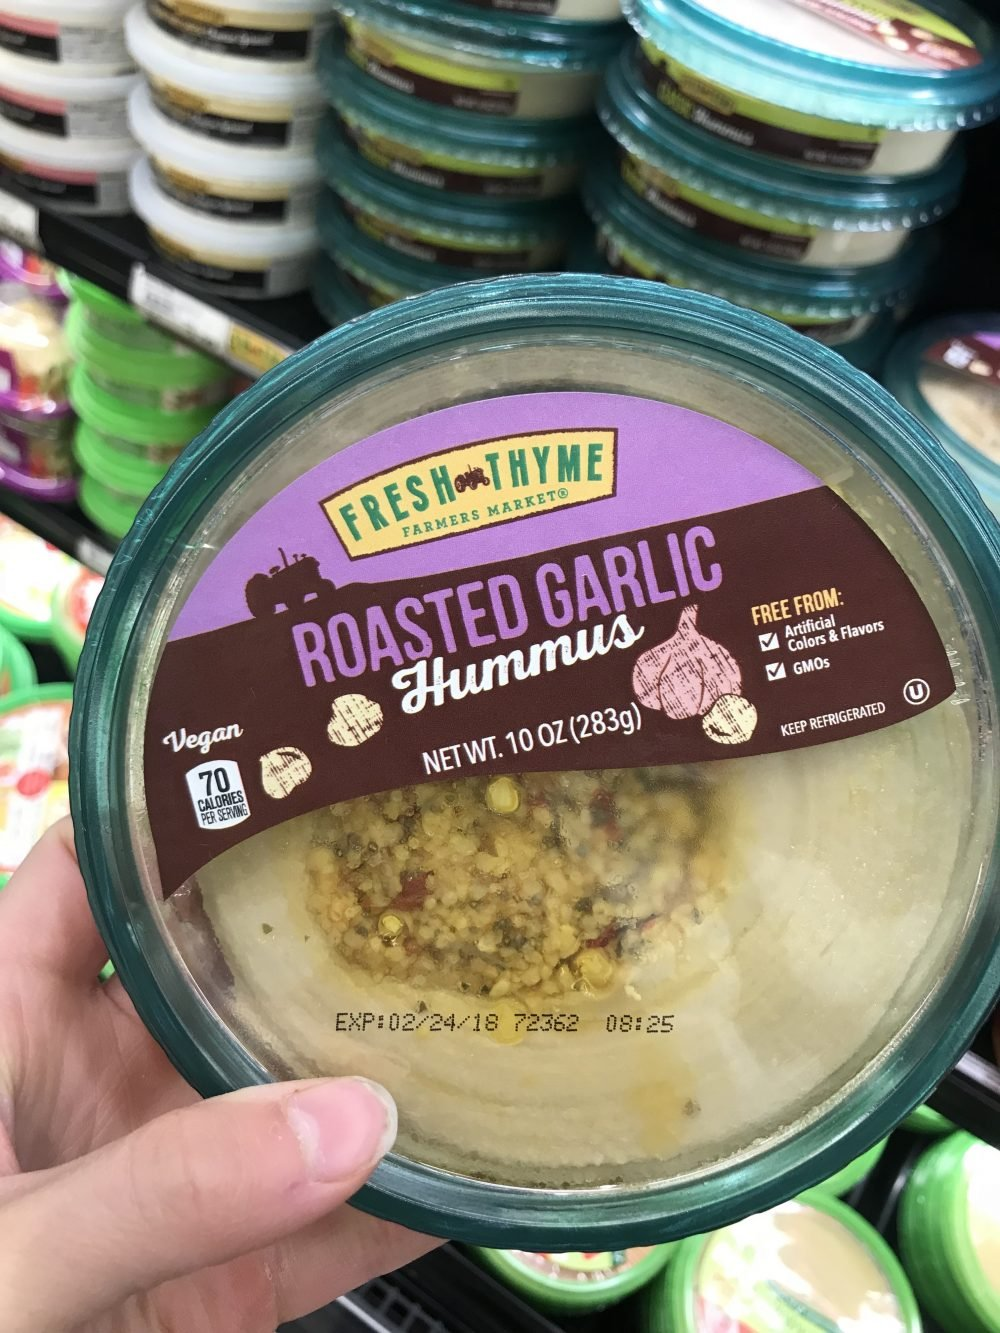 Clear tub of roasted garlic hummus